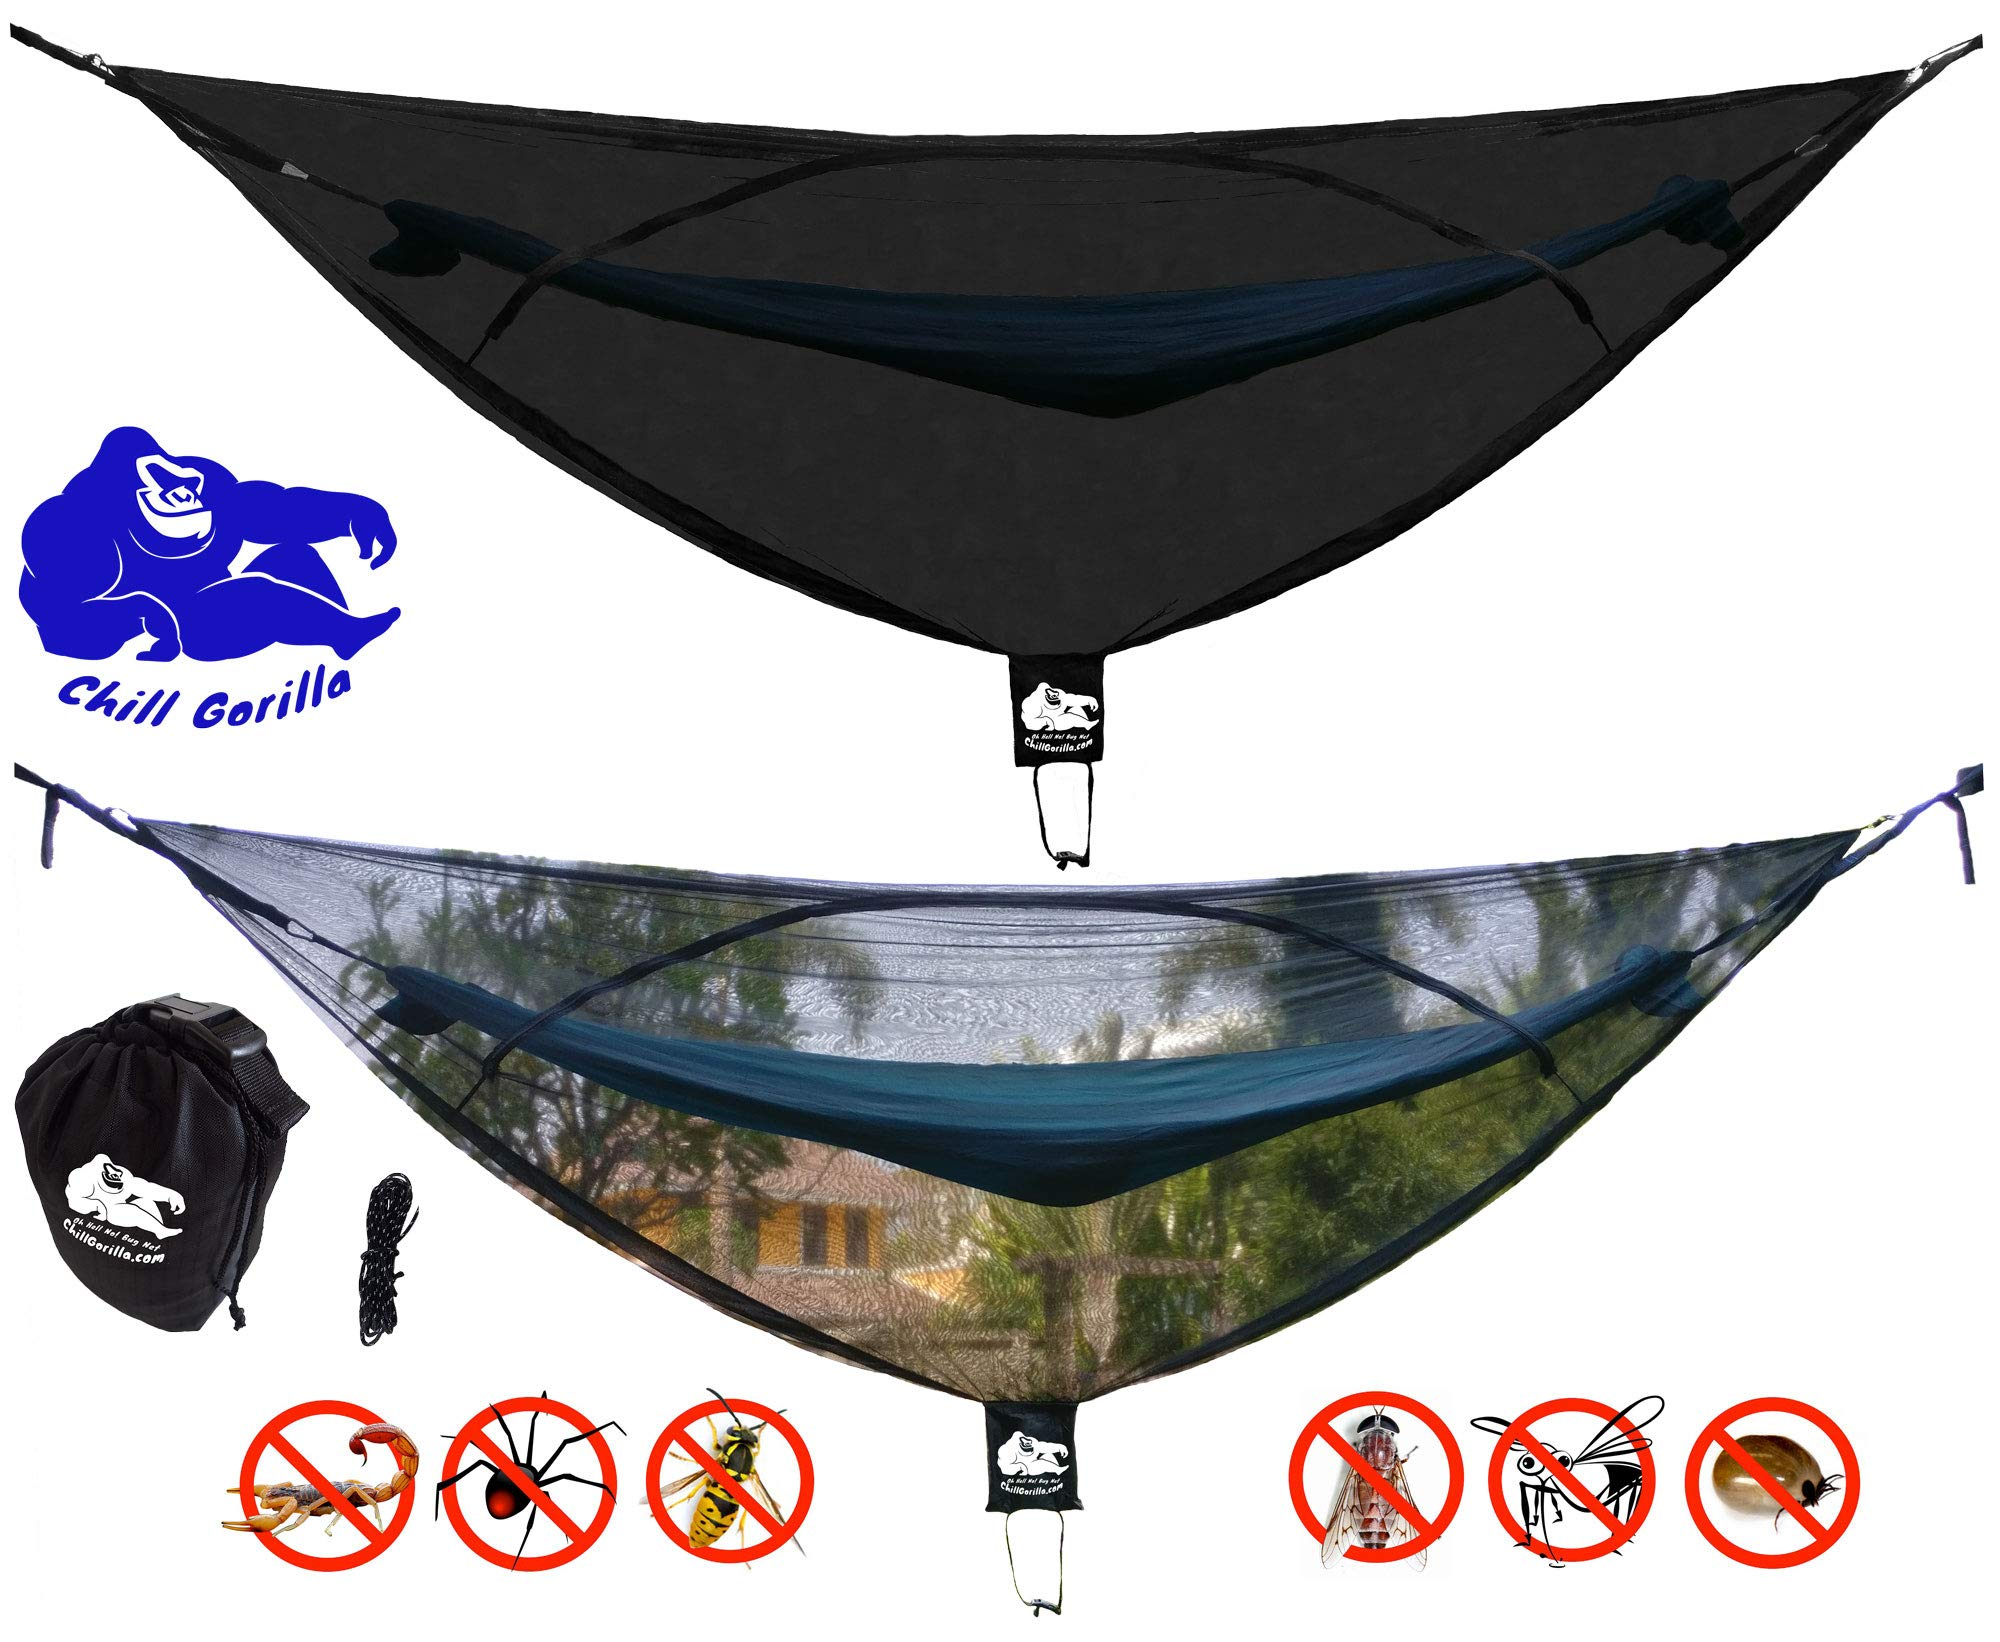 Chill Gorilla OH Hell NO! 11' Bug NET Stops Mosquitoes, No See Ums & Repels Insects. Fits All Camping Hammocks. Compact, Lightweight. Size 132'' x 51''. Essential Backpacking Jungle Gear. Eno Accessory by Chill Gorilla